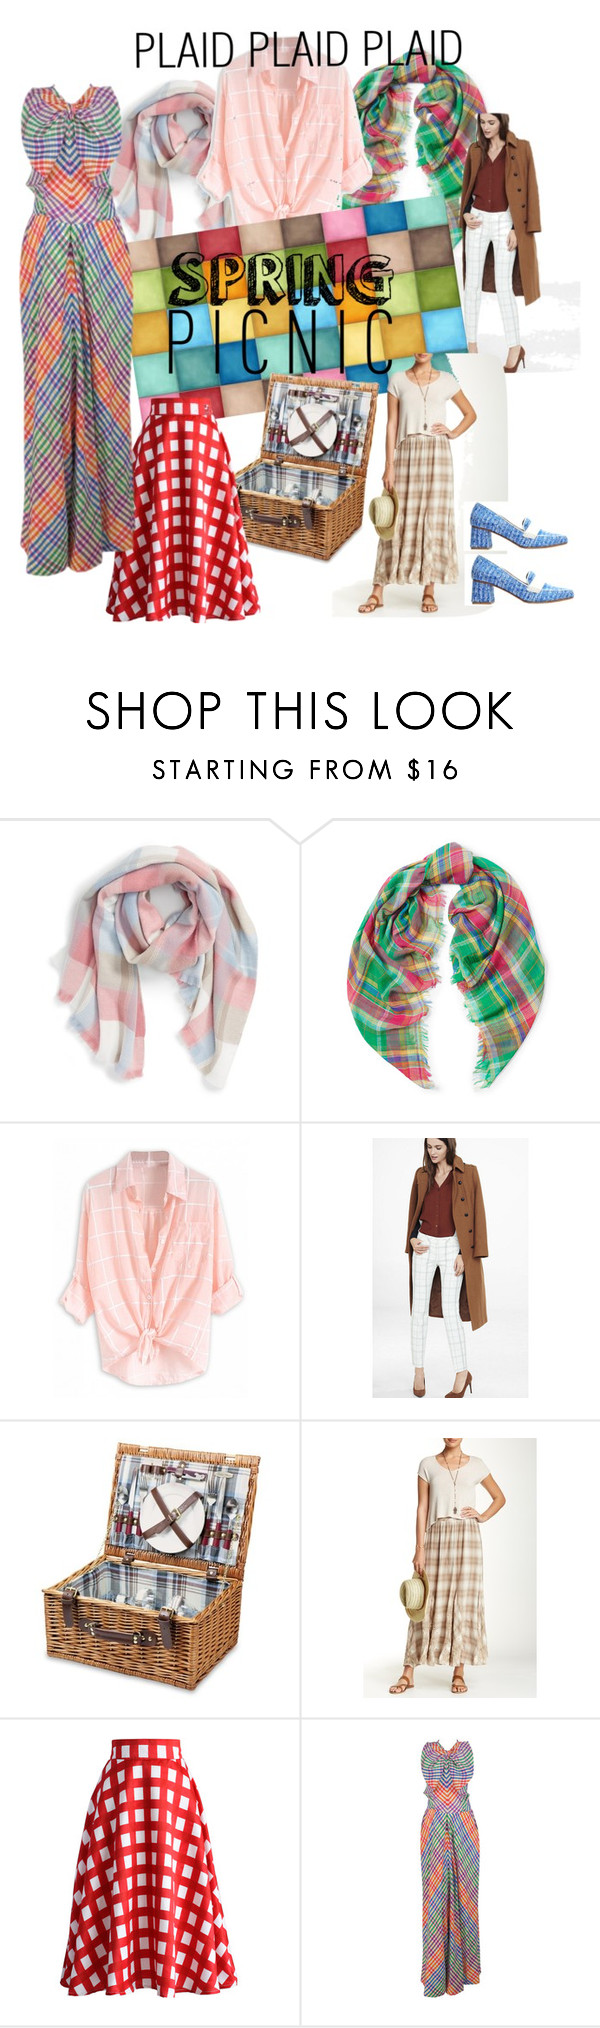 """Wearing plaid is a picnic in spring 2016"" by loriwynne on Polyvore featuring BP., Express, Picnic Time, 4 Love & Liberty, Chicwish and Geoffrey Beene"